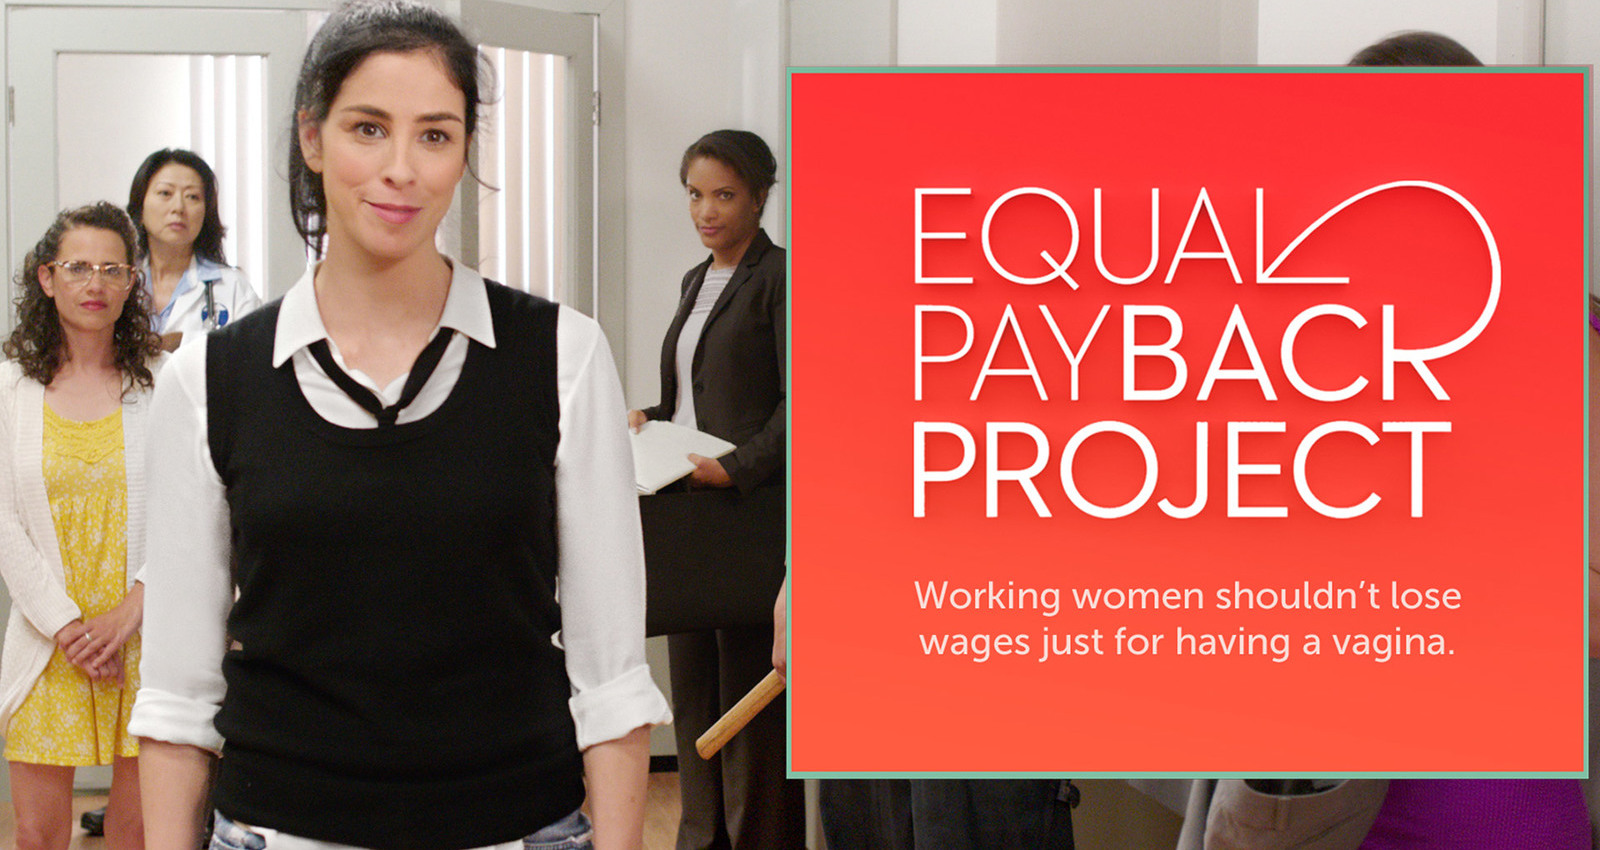 Equal Payback Project